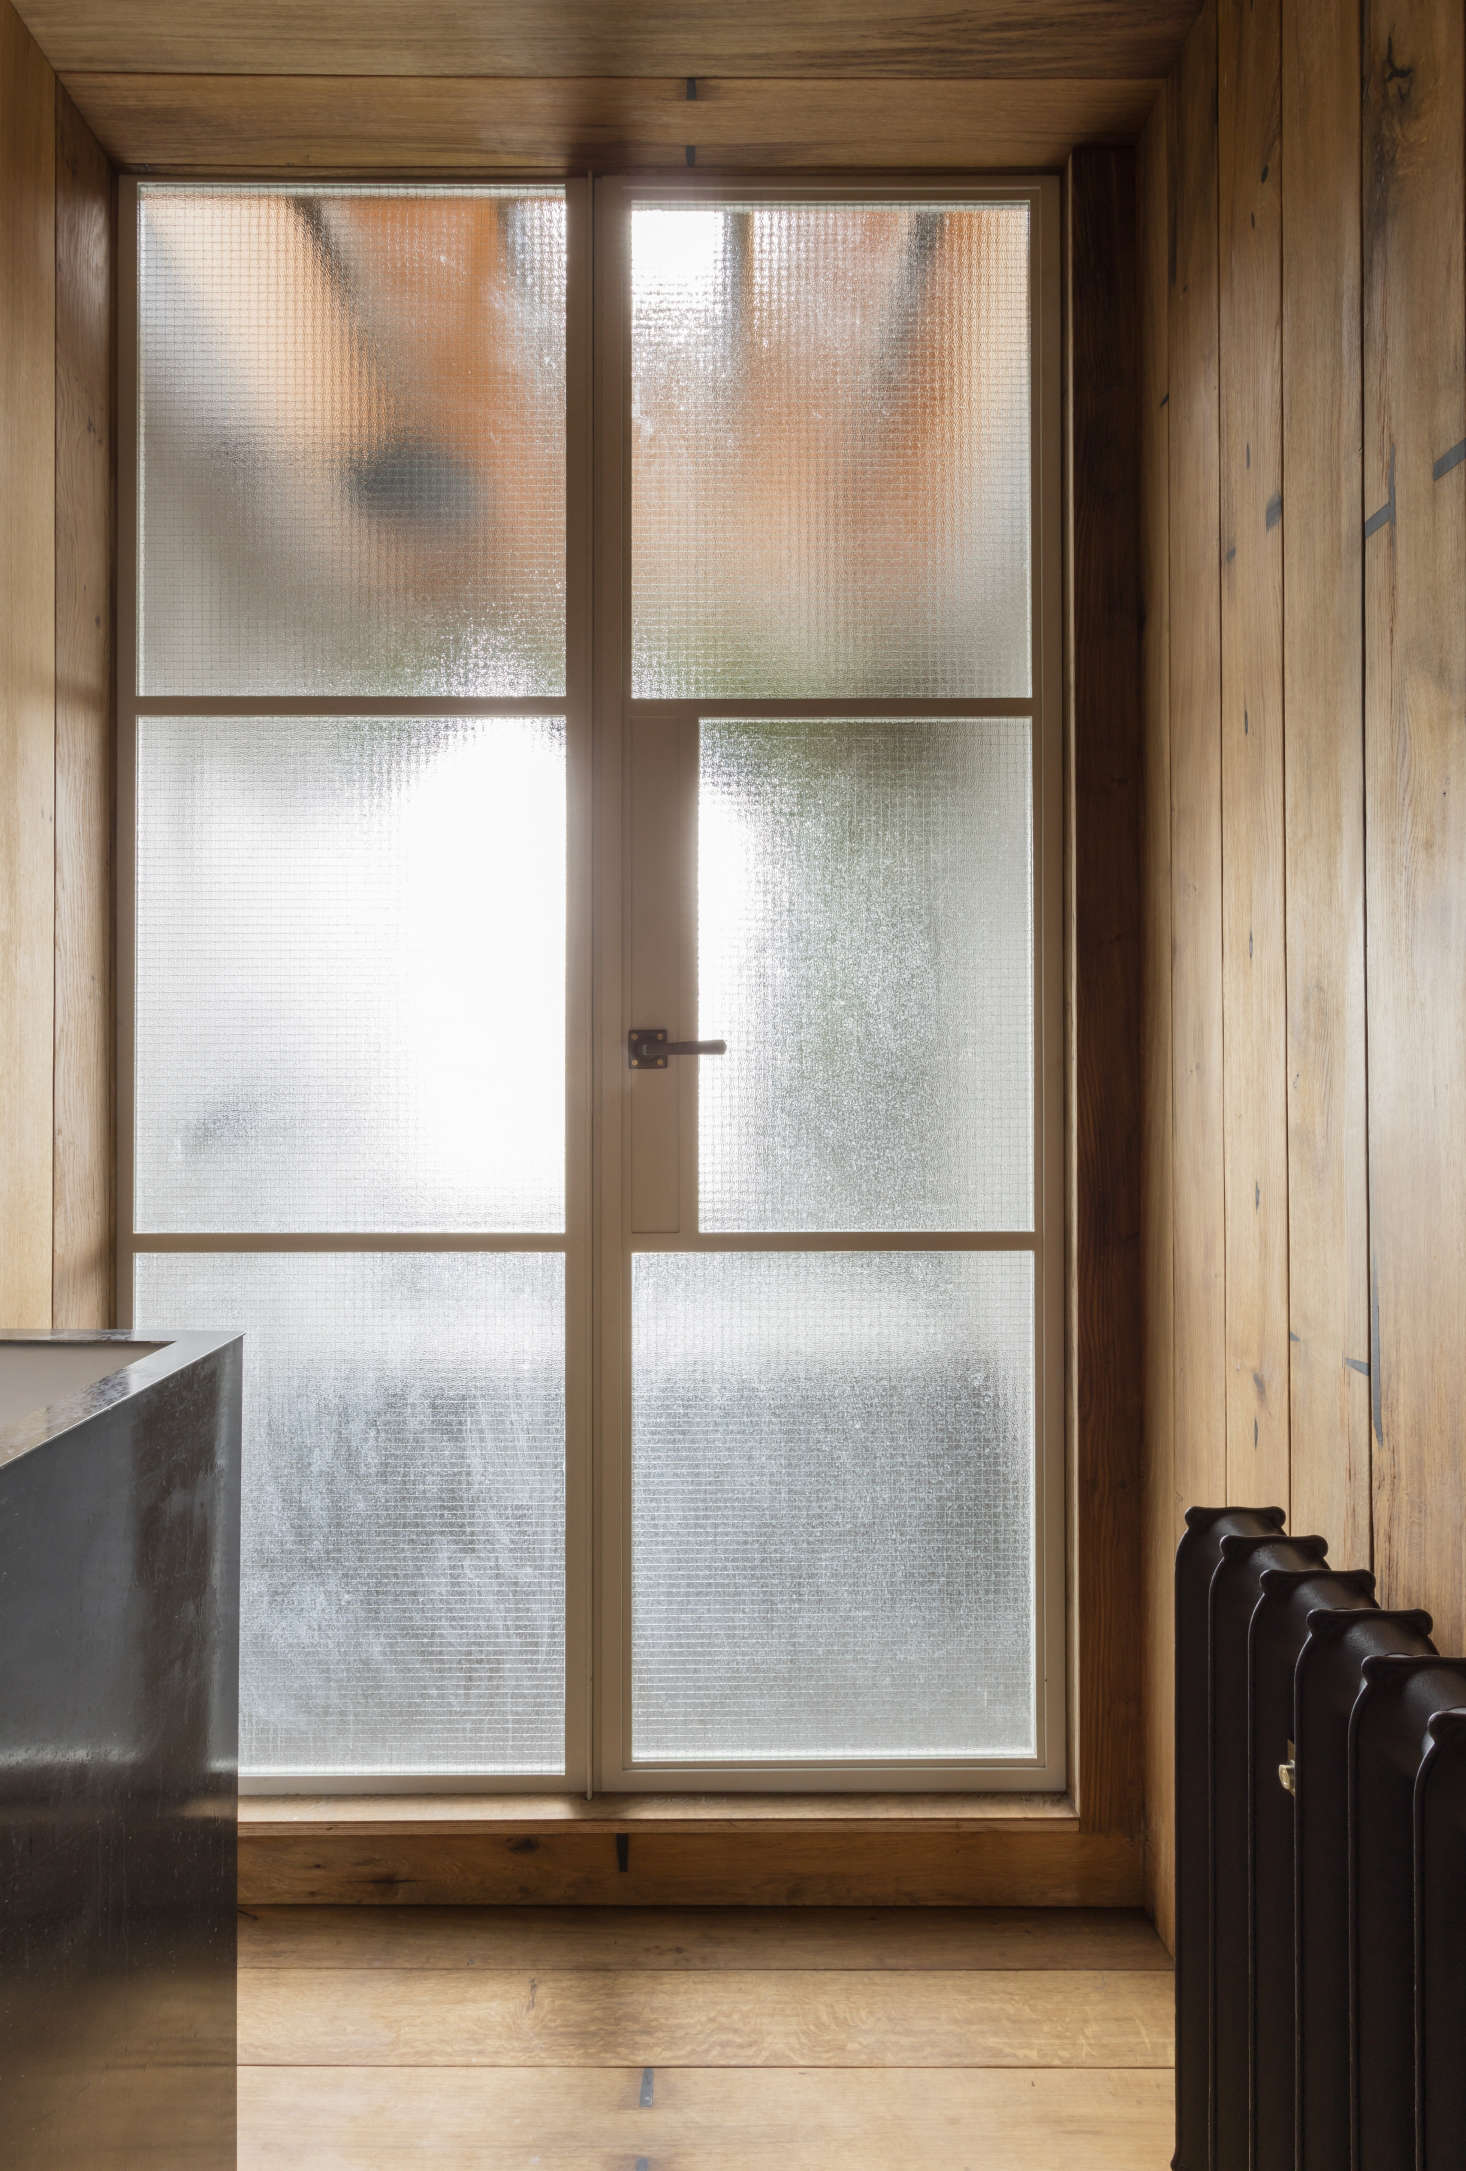 Astridge sourced the fumed oak from AH Peck LTD, and the steel-framed glass wall with inset door was made by the venerable UK company Crittall—for details, see Hardscaping 101: Steel Factory-Style Windows and Doors.